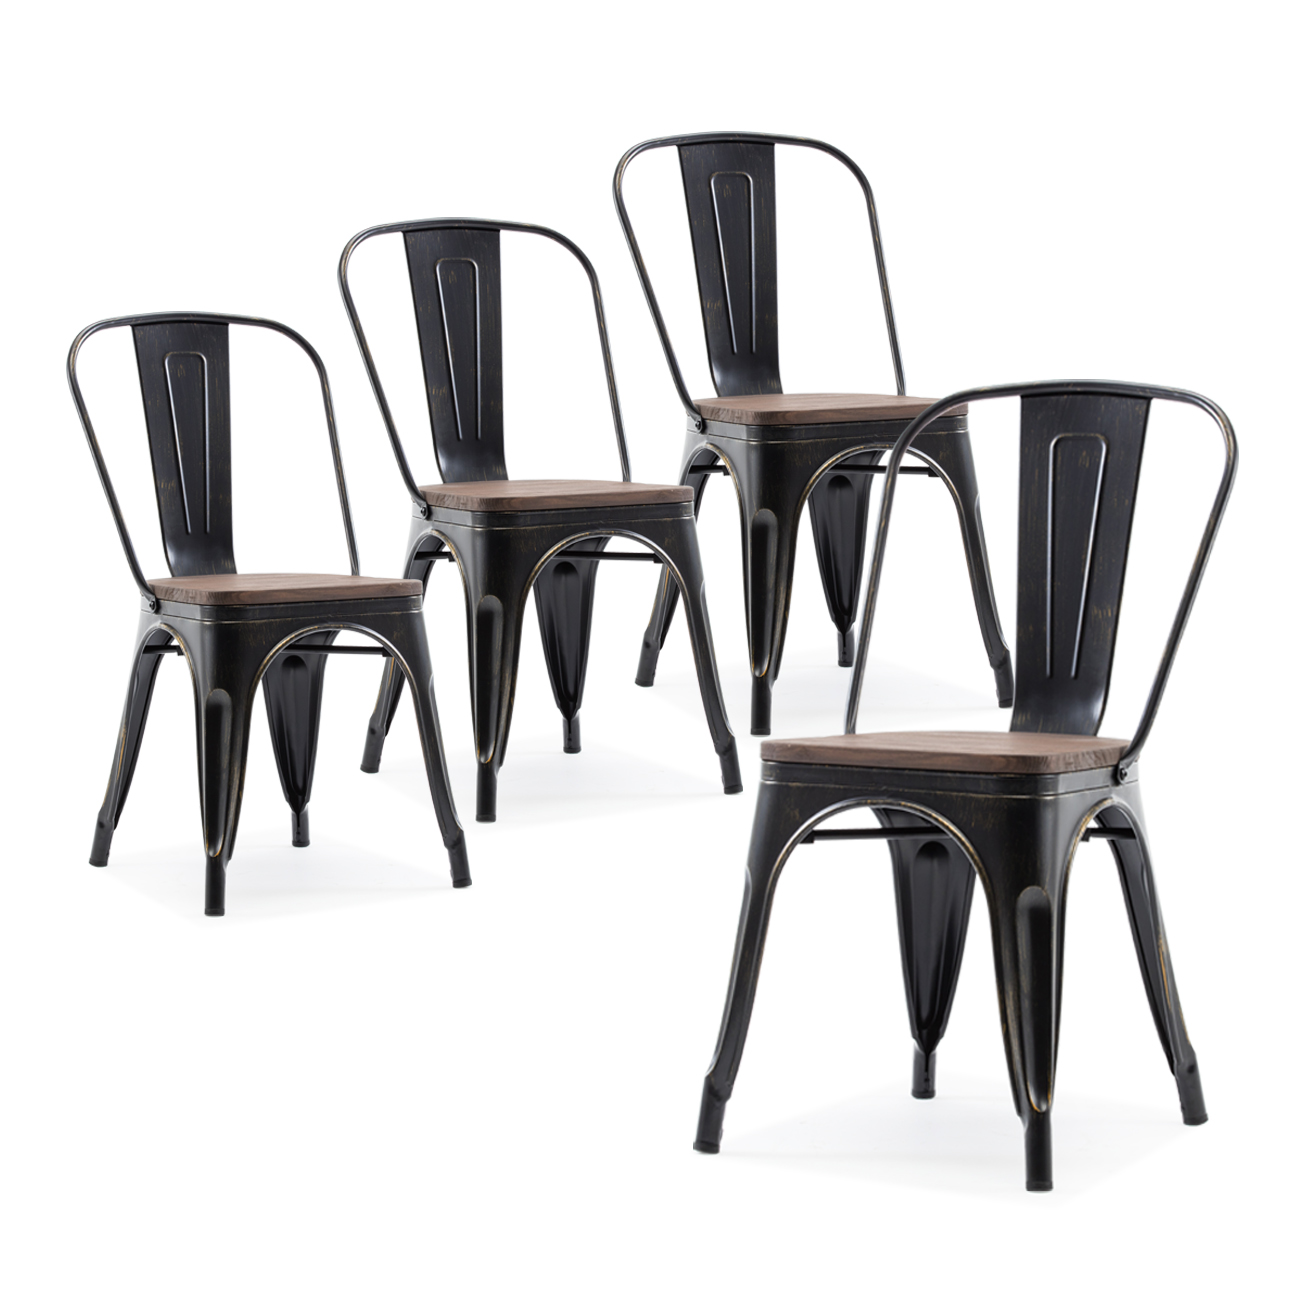 Details About 4 Pc Antique Black Wood Seat Cafe Stool Modern Metal Dining Stacking Chairs